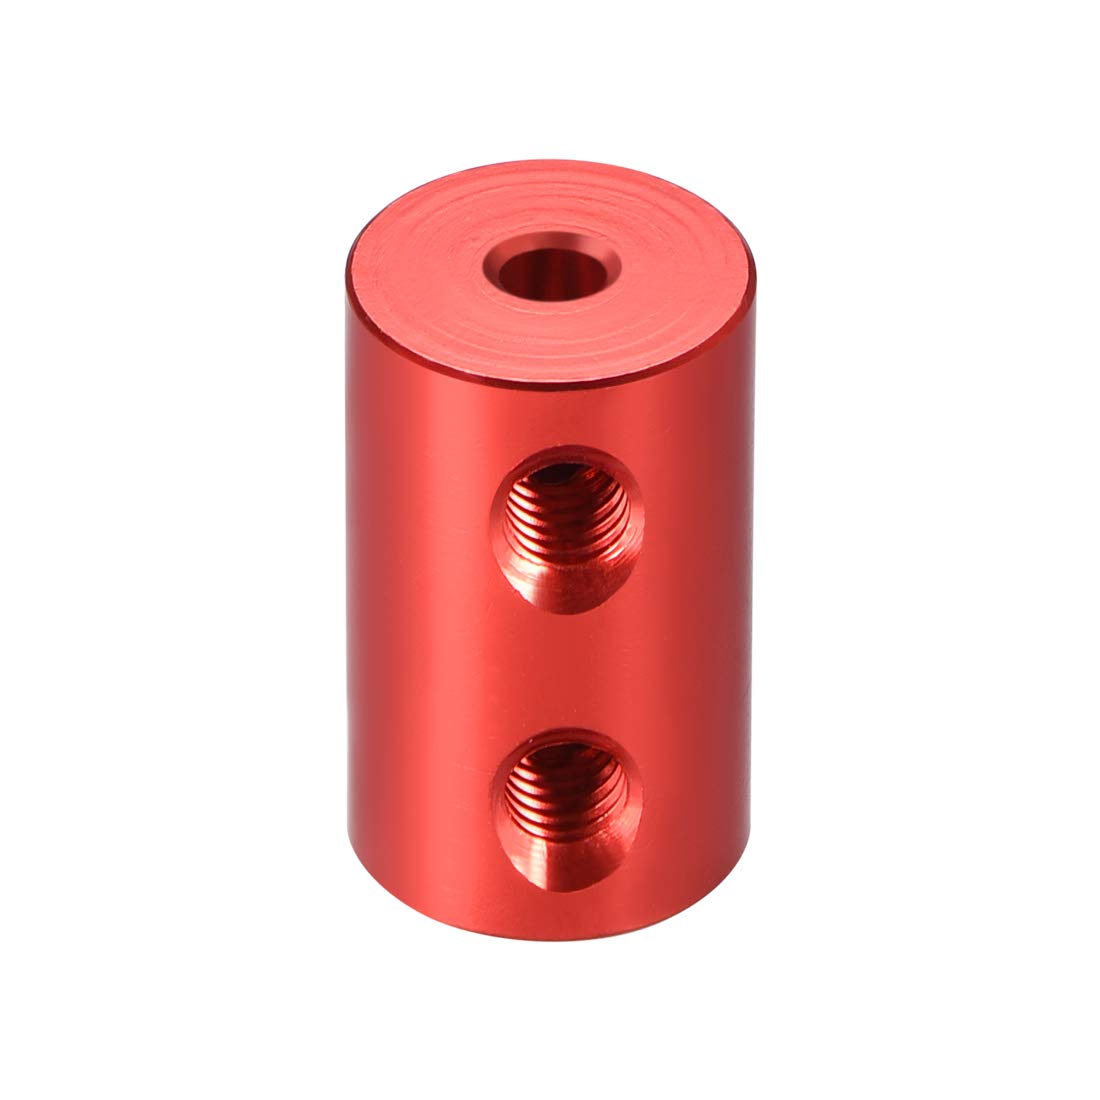 uxcell Shaft Coupling 3.17mm to 5mm Bore L20xD12 Robot Motor Wheel Rigid Coupler Connector Red